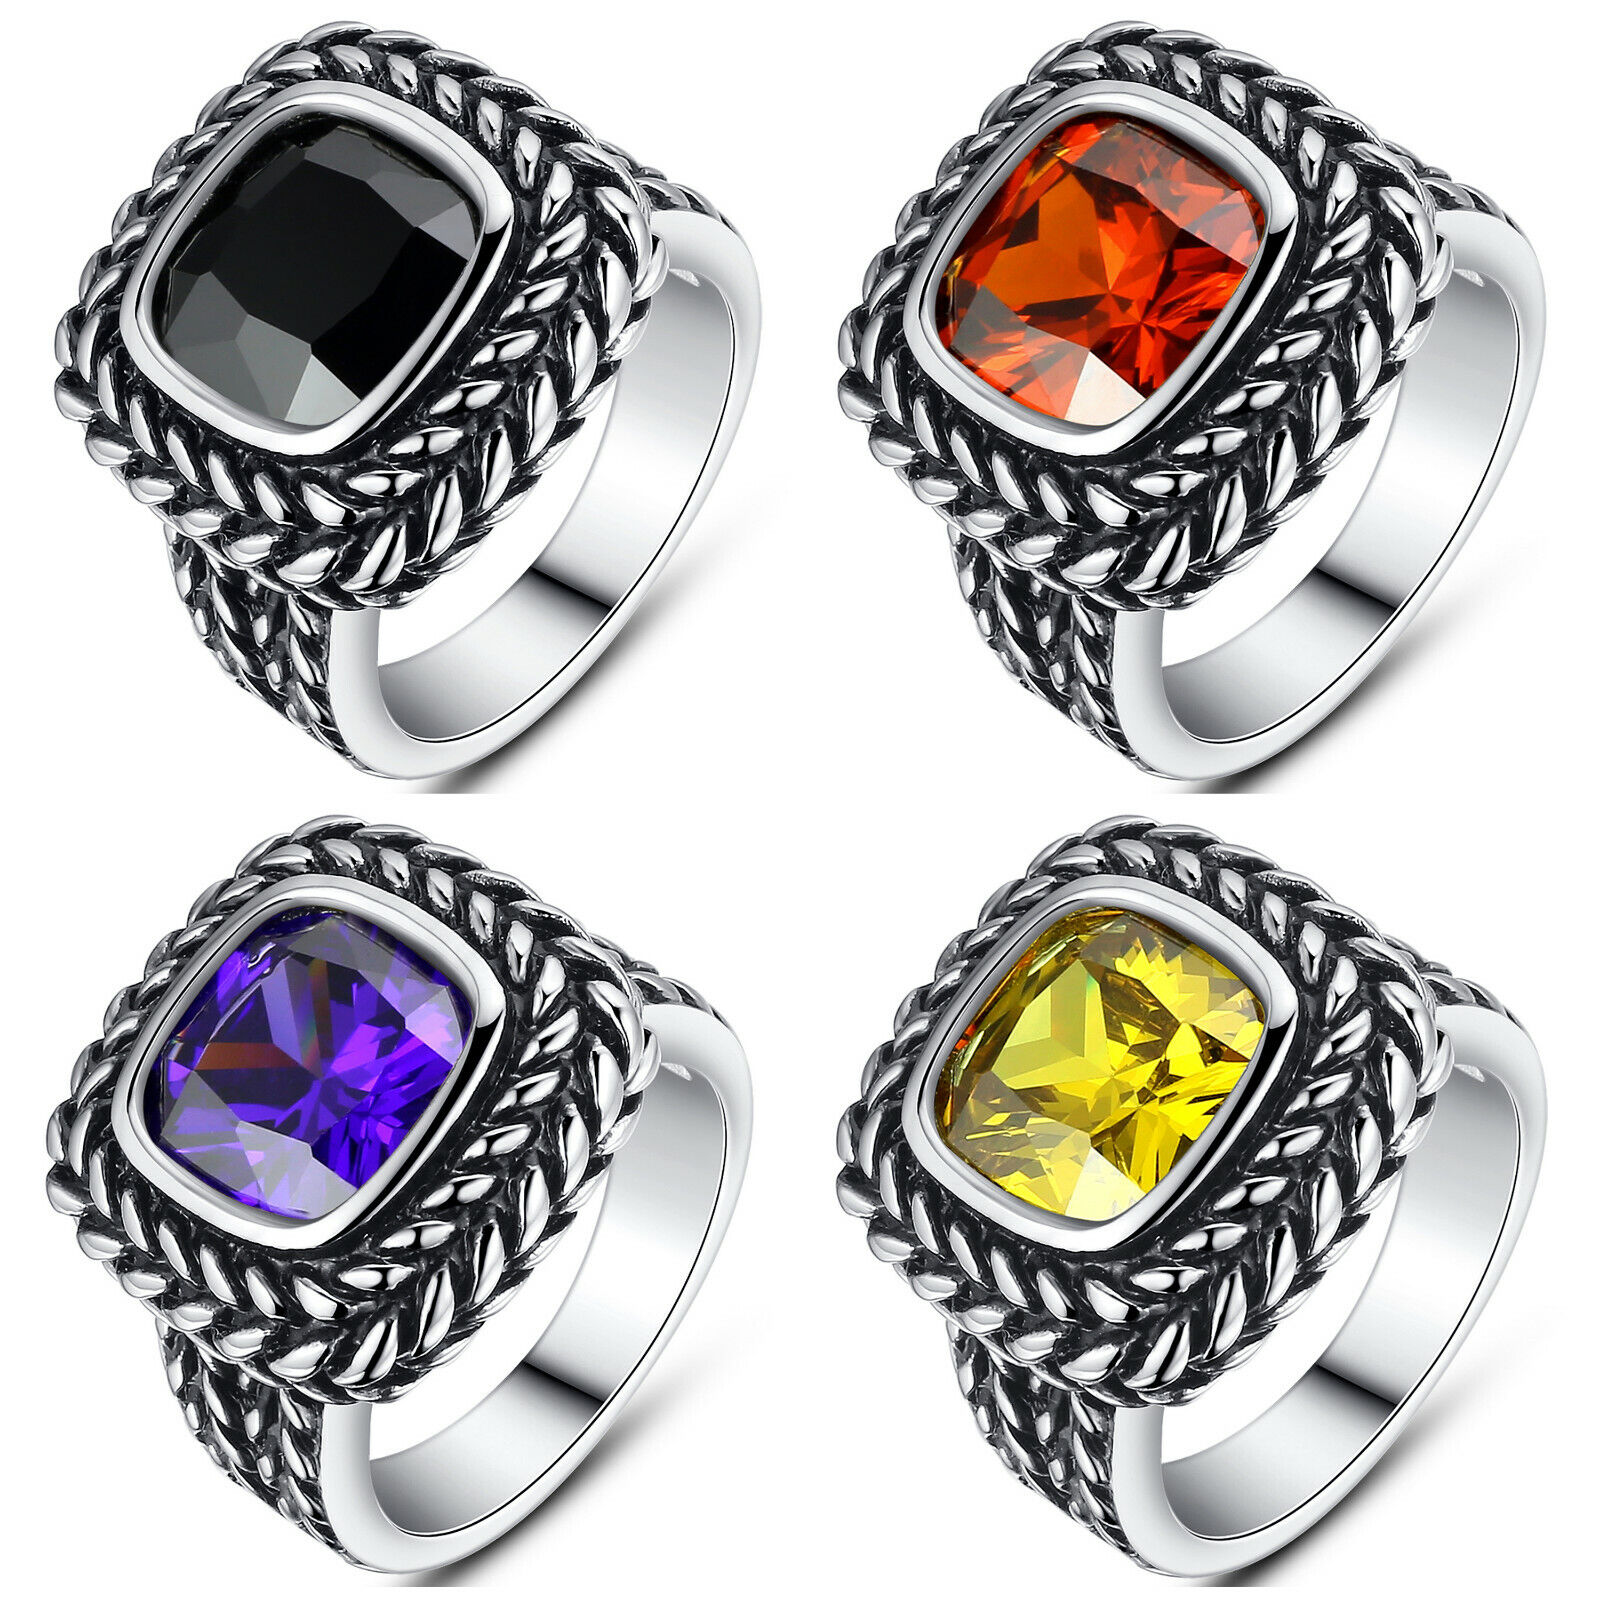 Women's Stainless Steel Vintage Square Cubic Zirconia Statement Cocktail Ring Fashion Jewelry